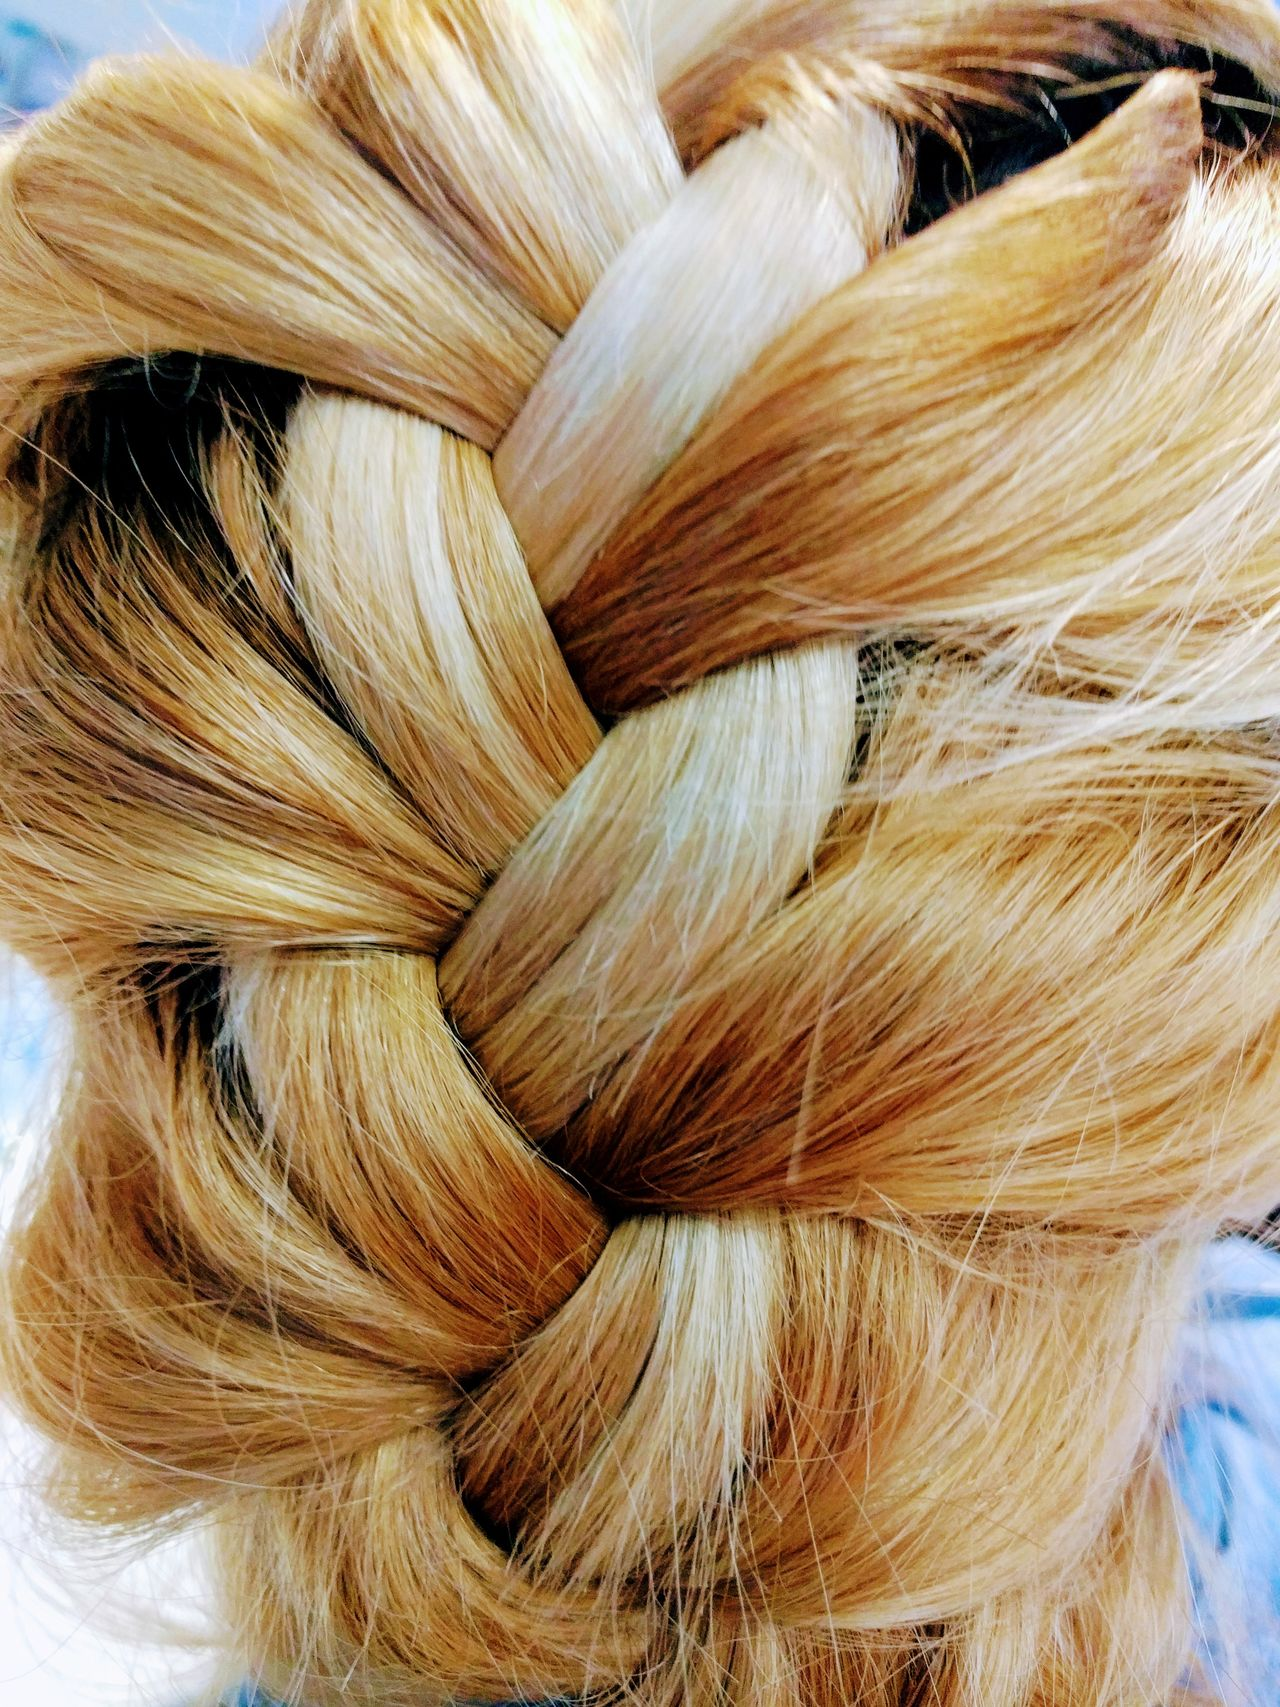 Backgrounds Close-up Full Frame Hairstyle Blonde